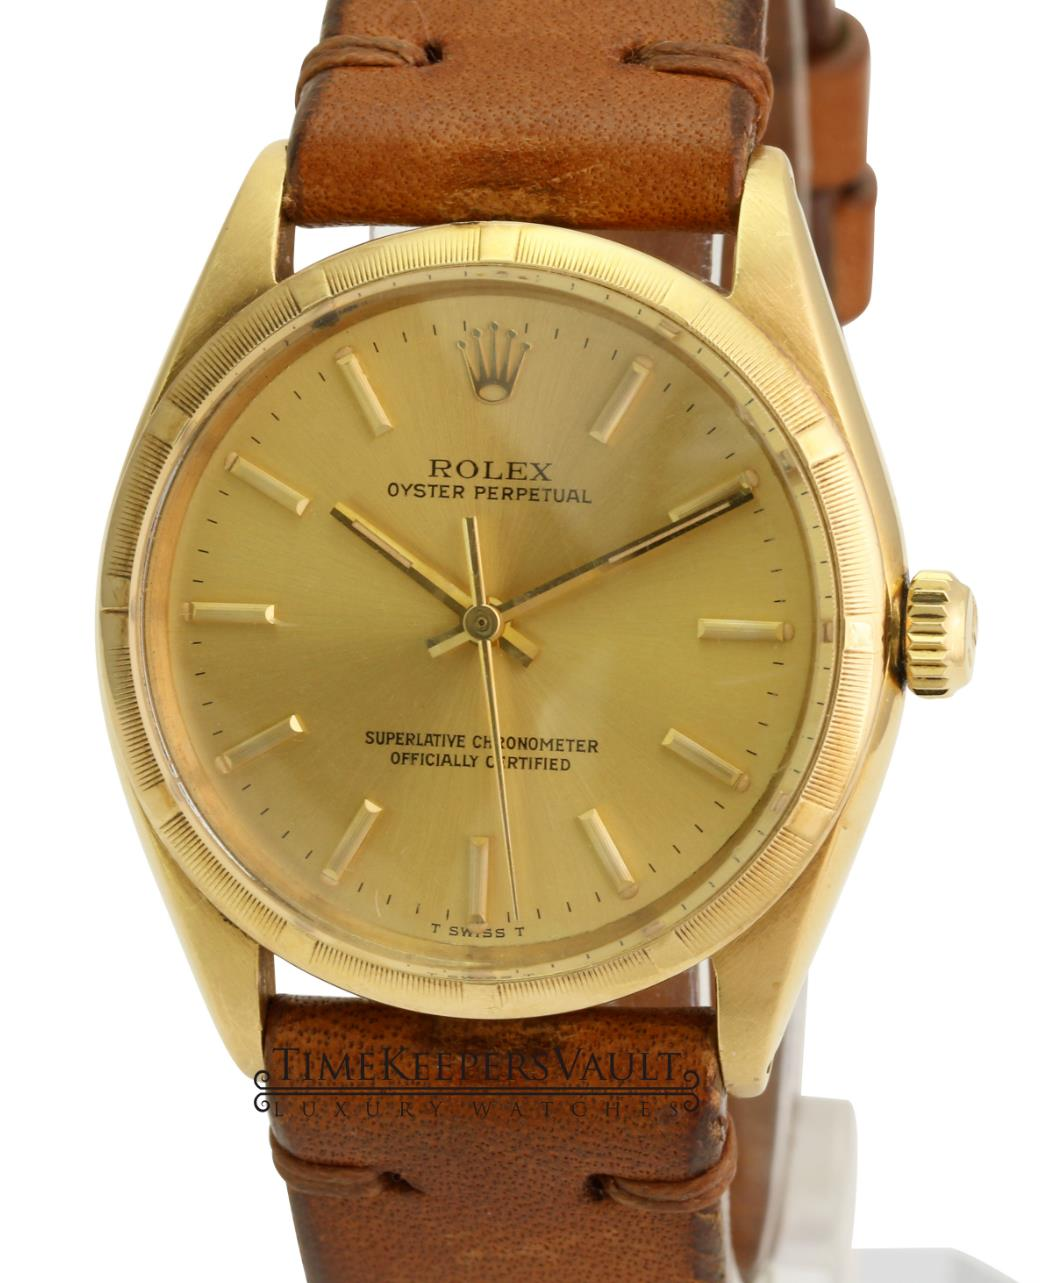 Vintage Rolex Watch Men's Oyster Perpetual1005 14k Yellow Gold Turn-o-Graph 34mm - Time Keepers Vault